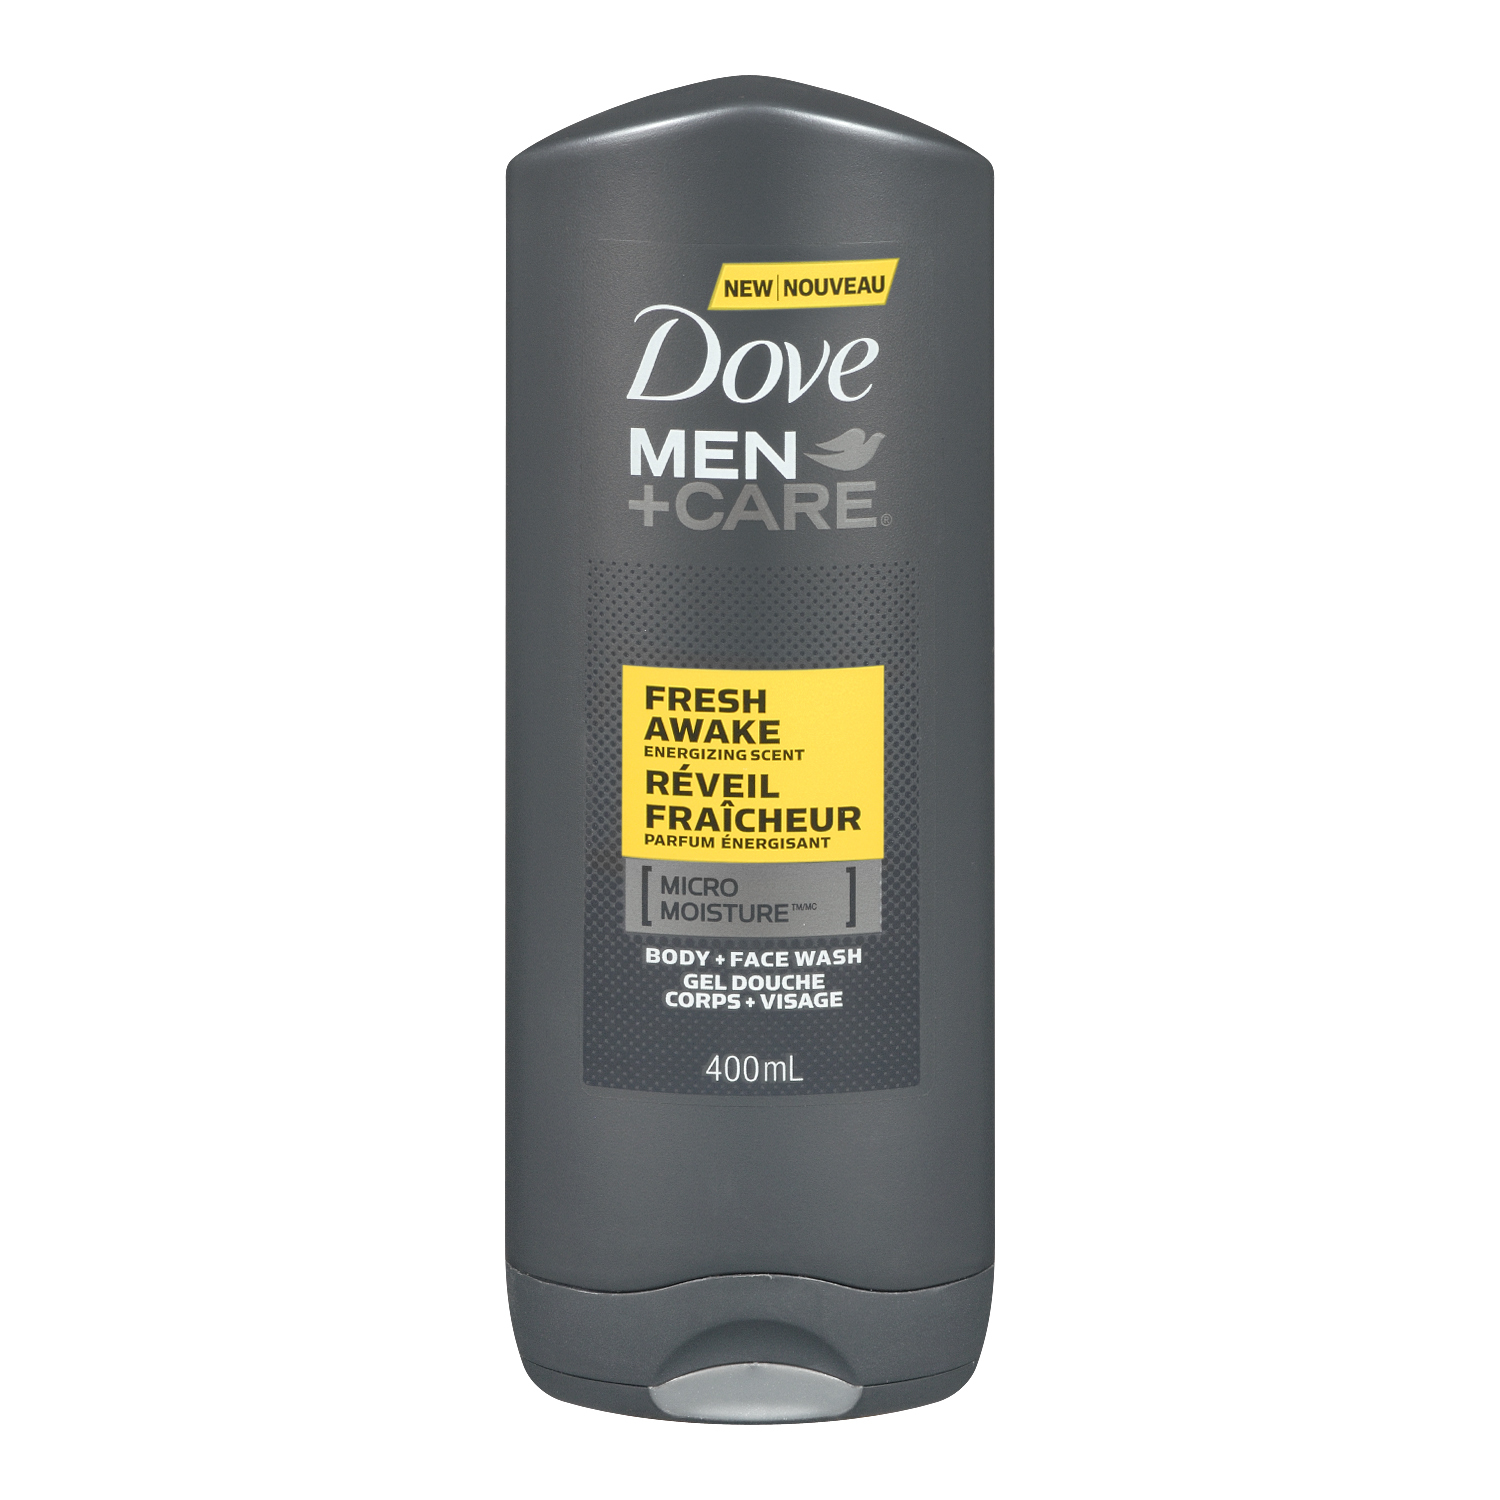 Dove Captures New Share with Men+Care Expansion